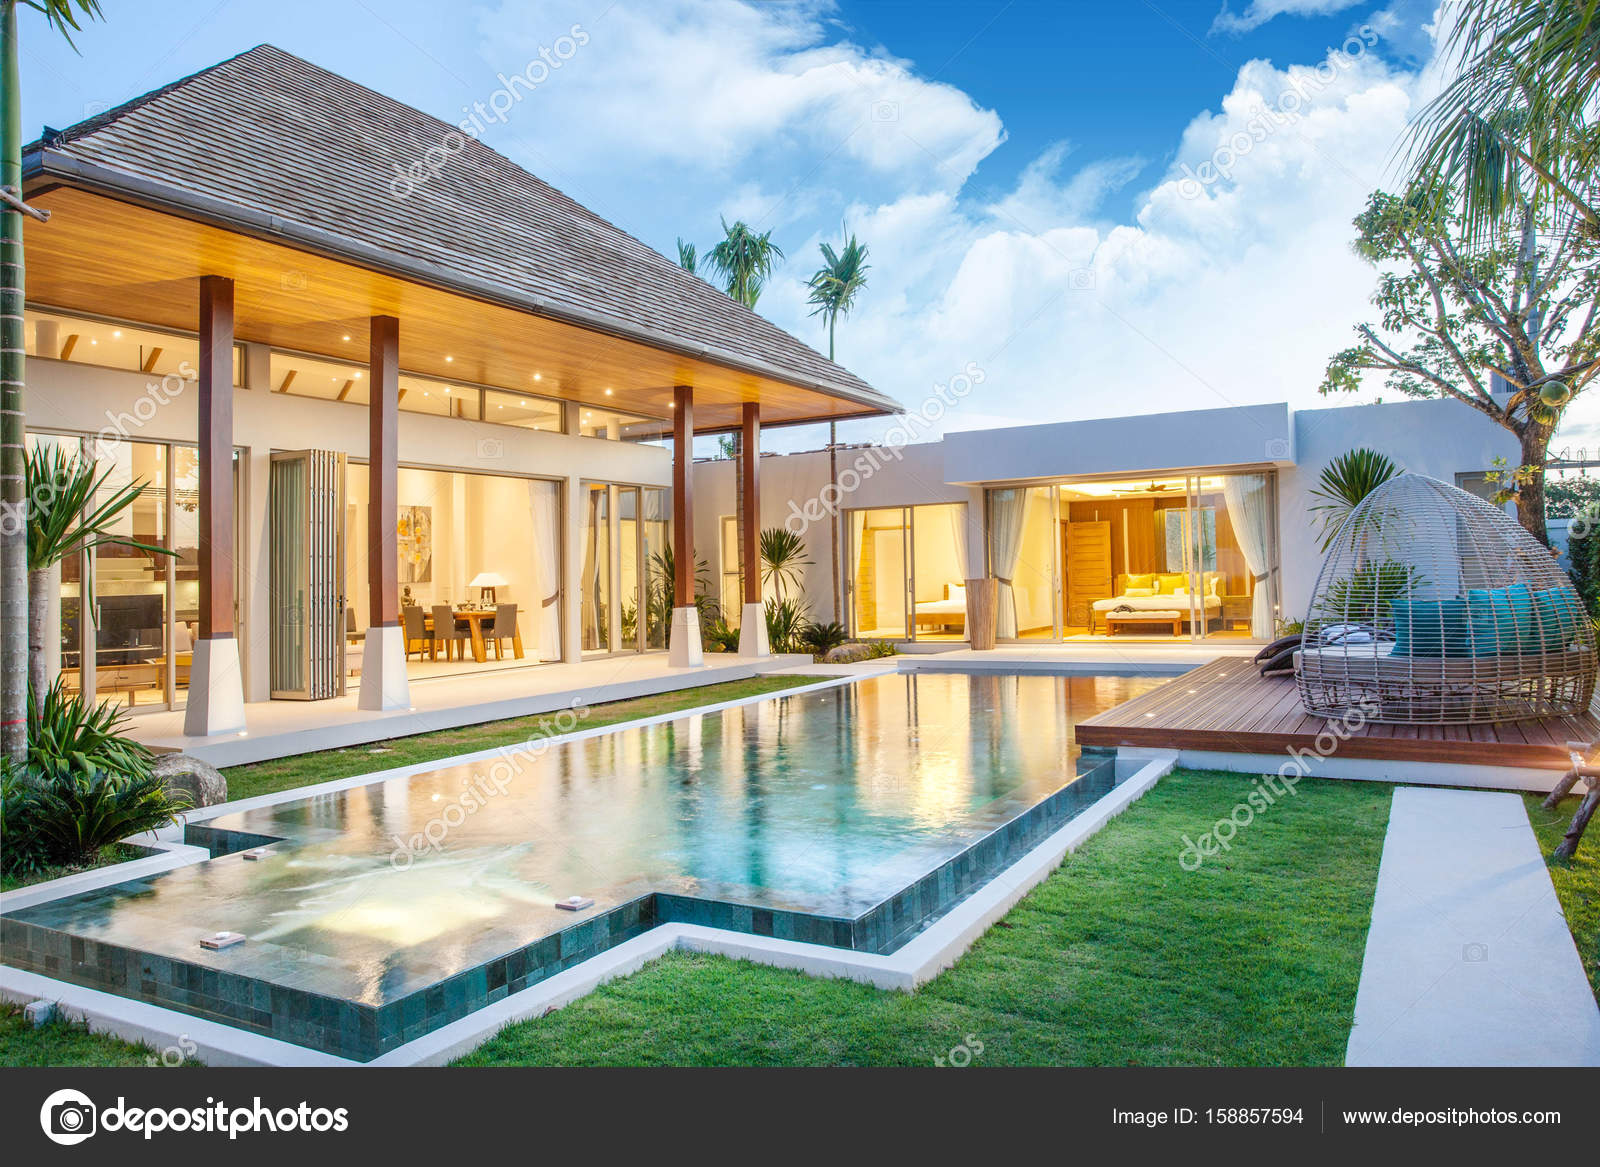 Interior and exterior design of pool villa which features for Pool exterior design